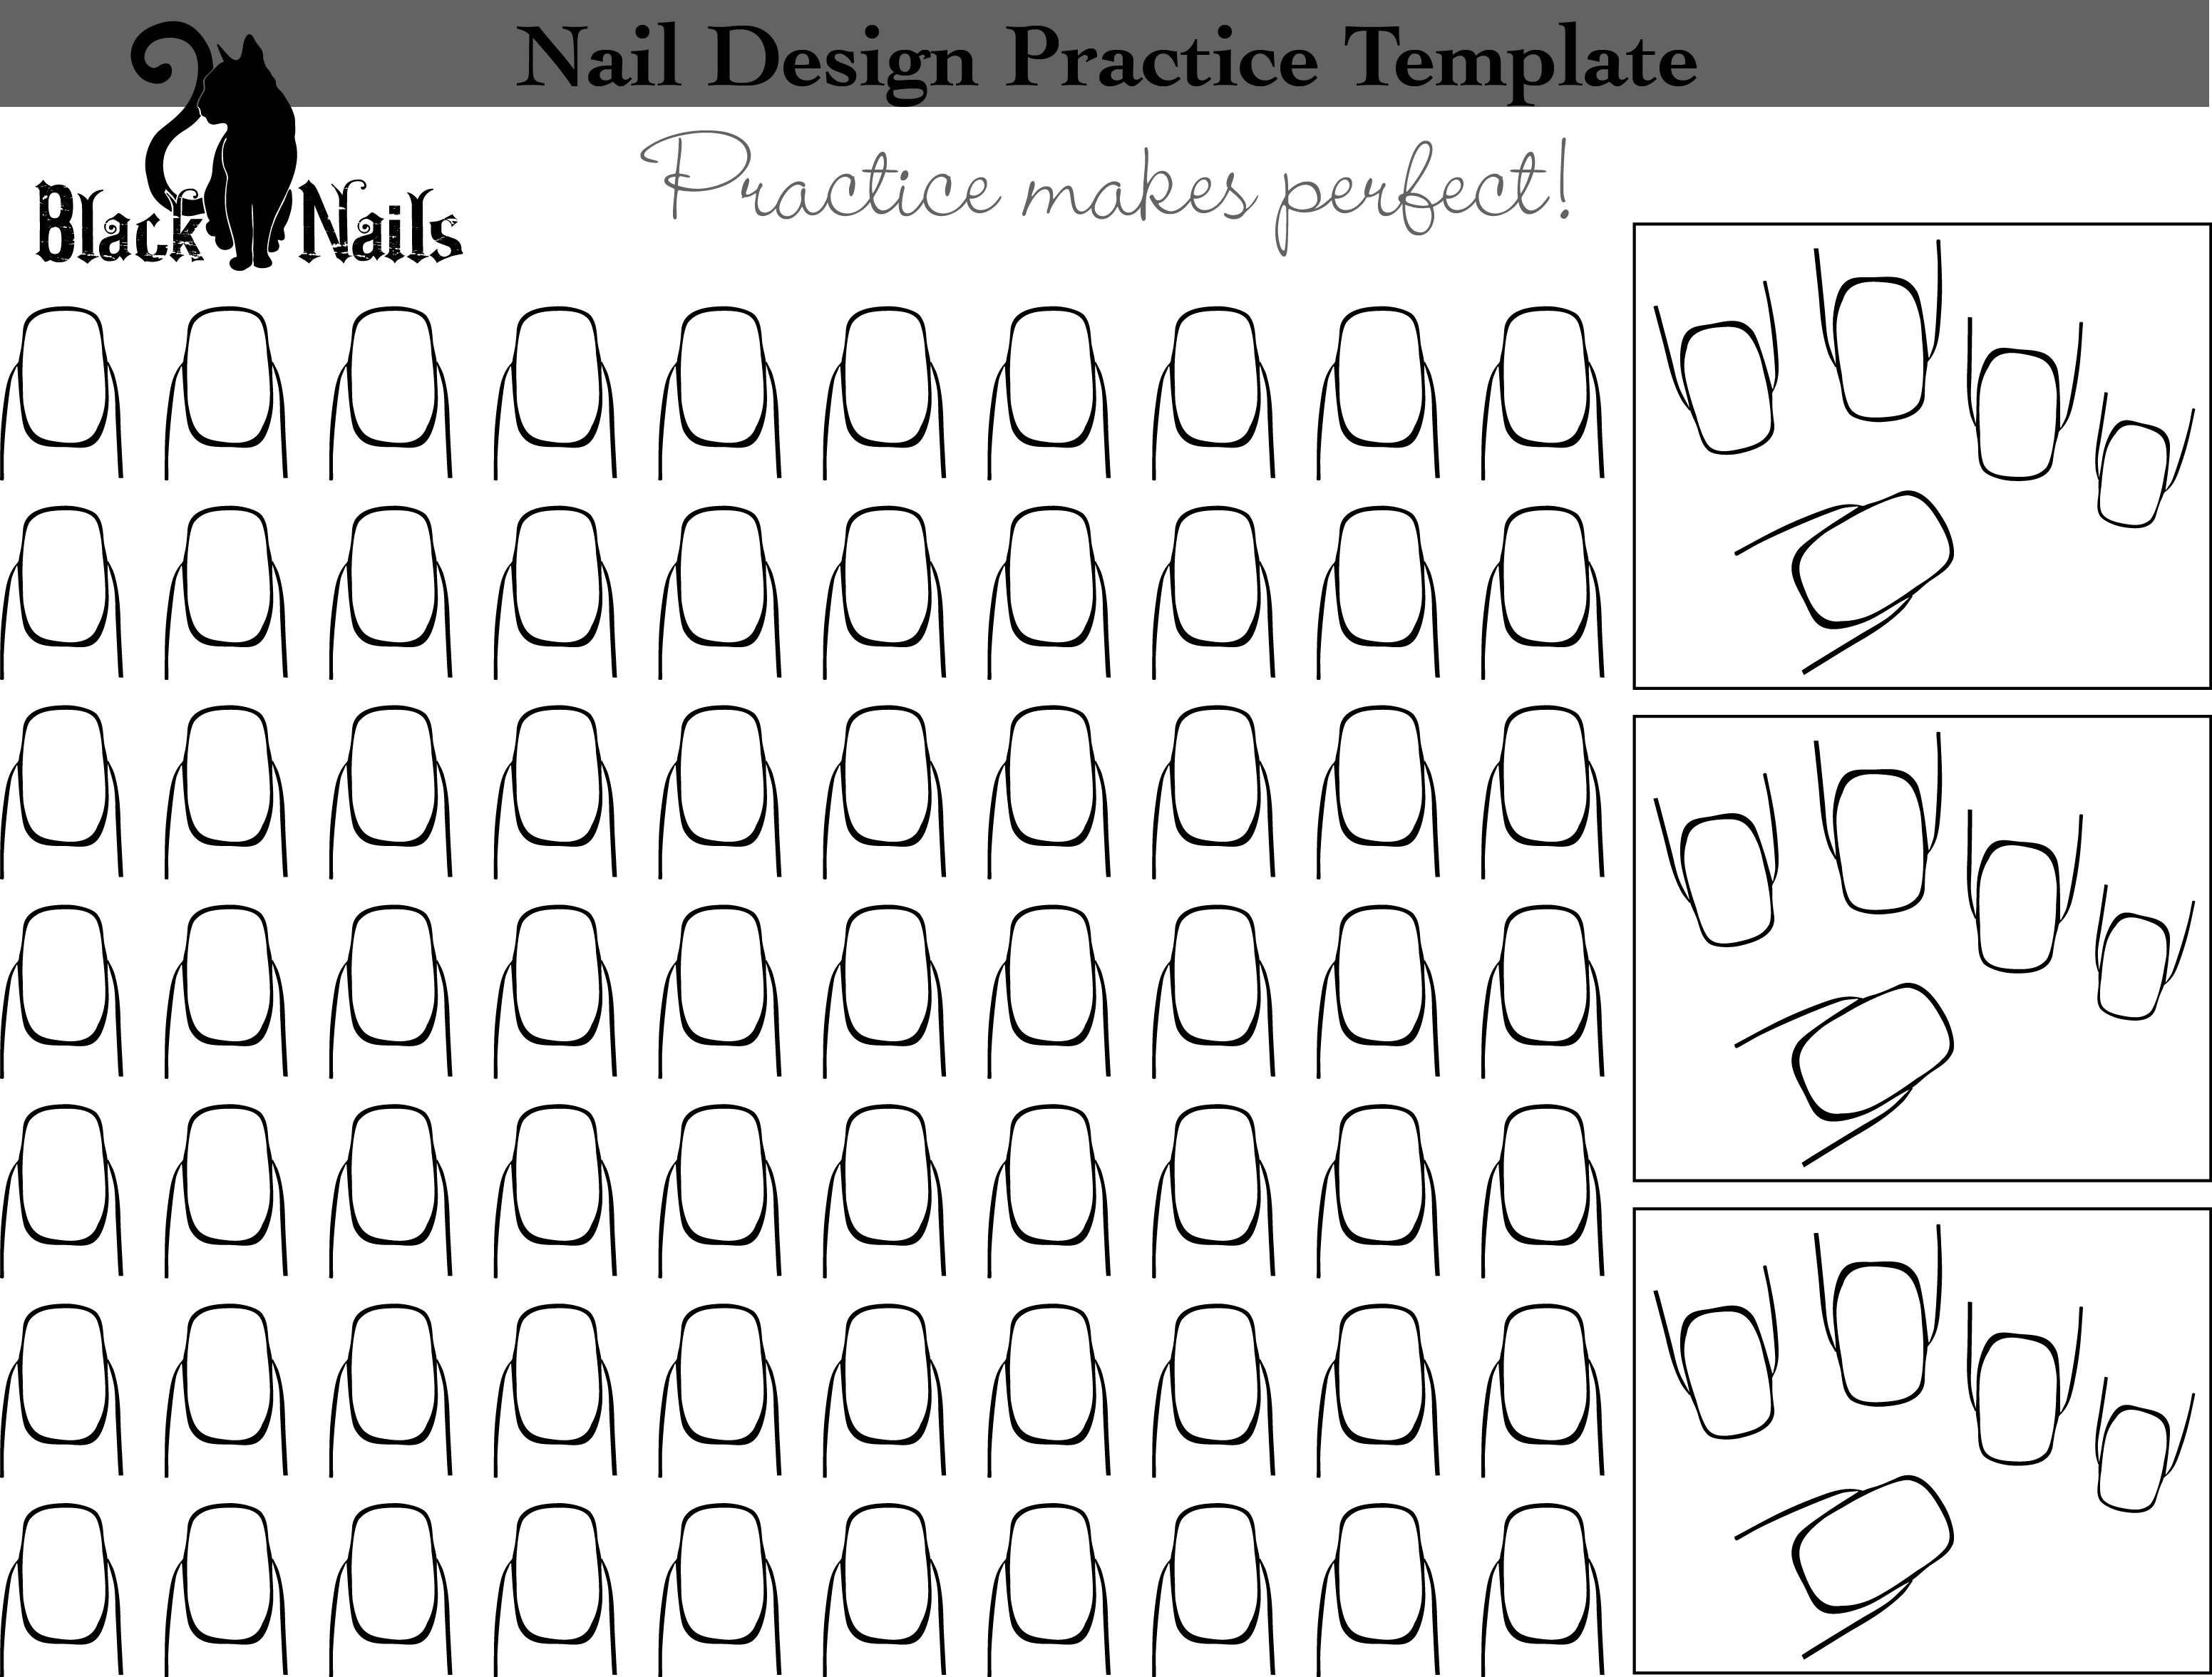 Nail Art Design Practice Sheet